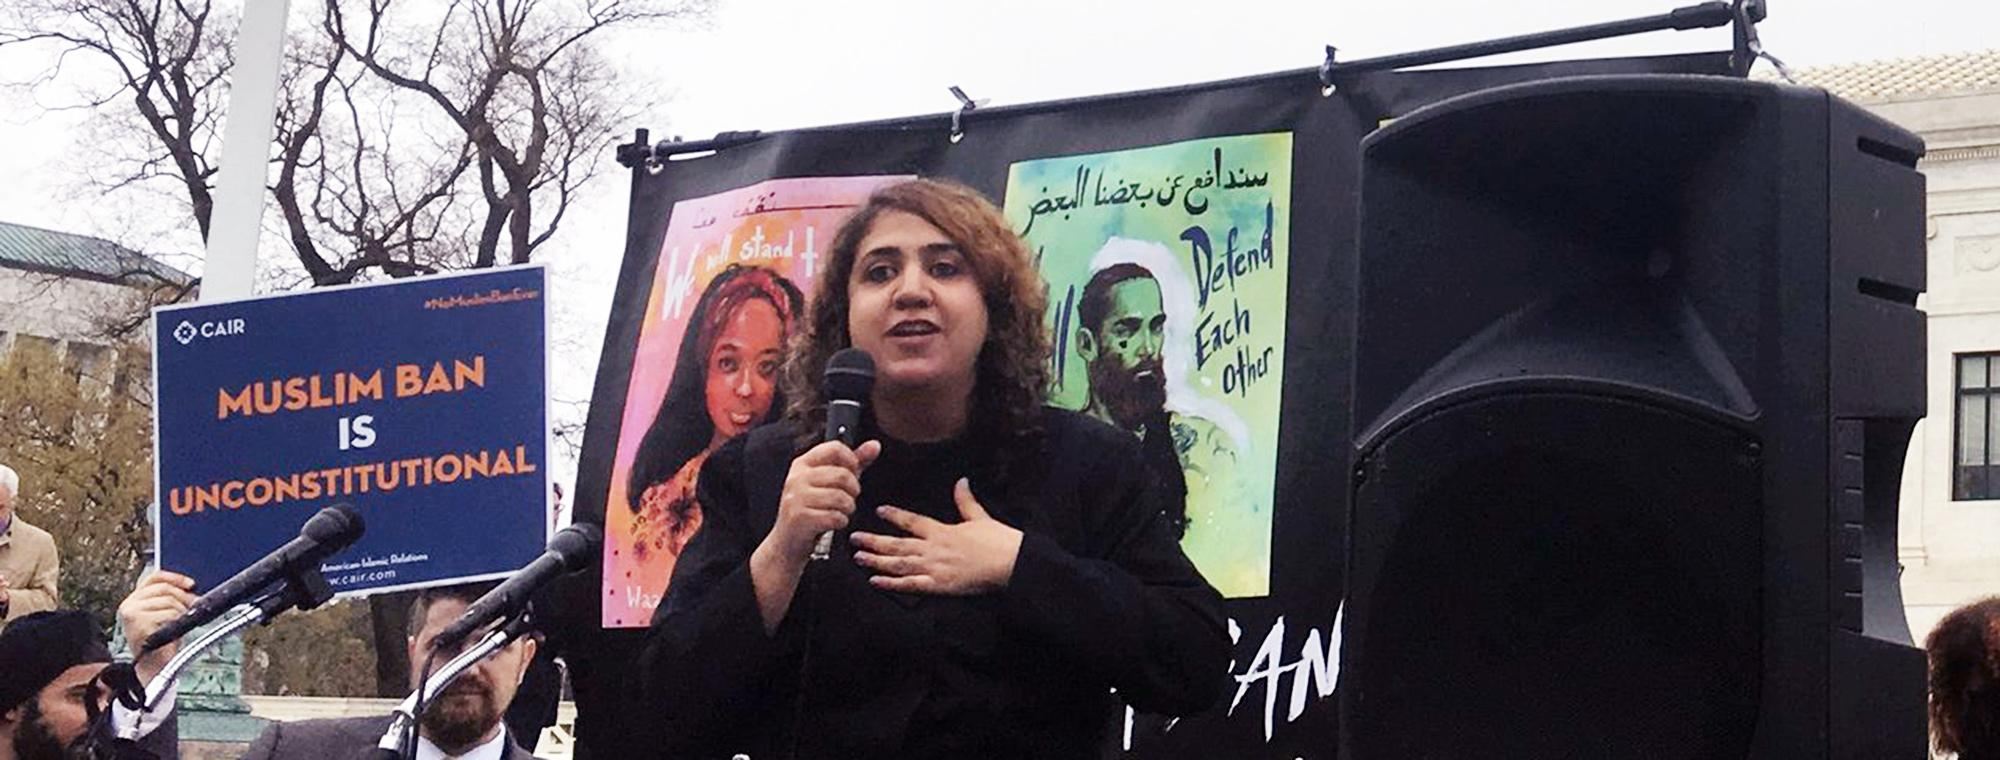 a woman speaking at a rallyl